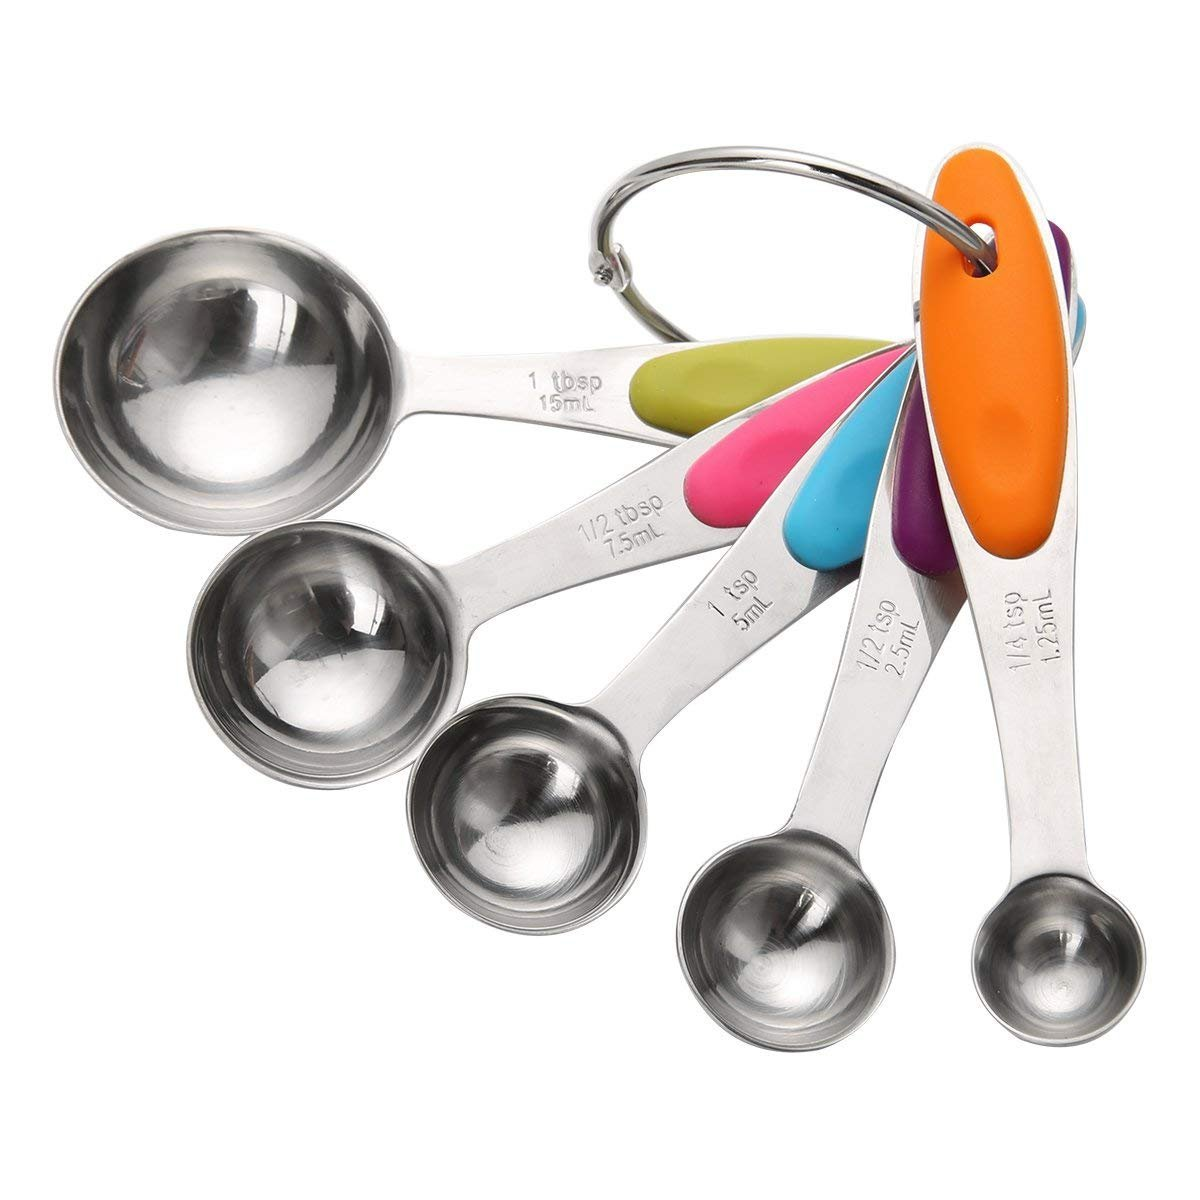 Measuring Spoons Set Stainless Steel 18/8 - Perfect for Baking and Cooking with Engraving US And Metric Measurement, Food Grade Soft Silicone Handle (Set of 5) Sefone household items